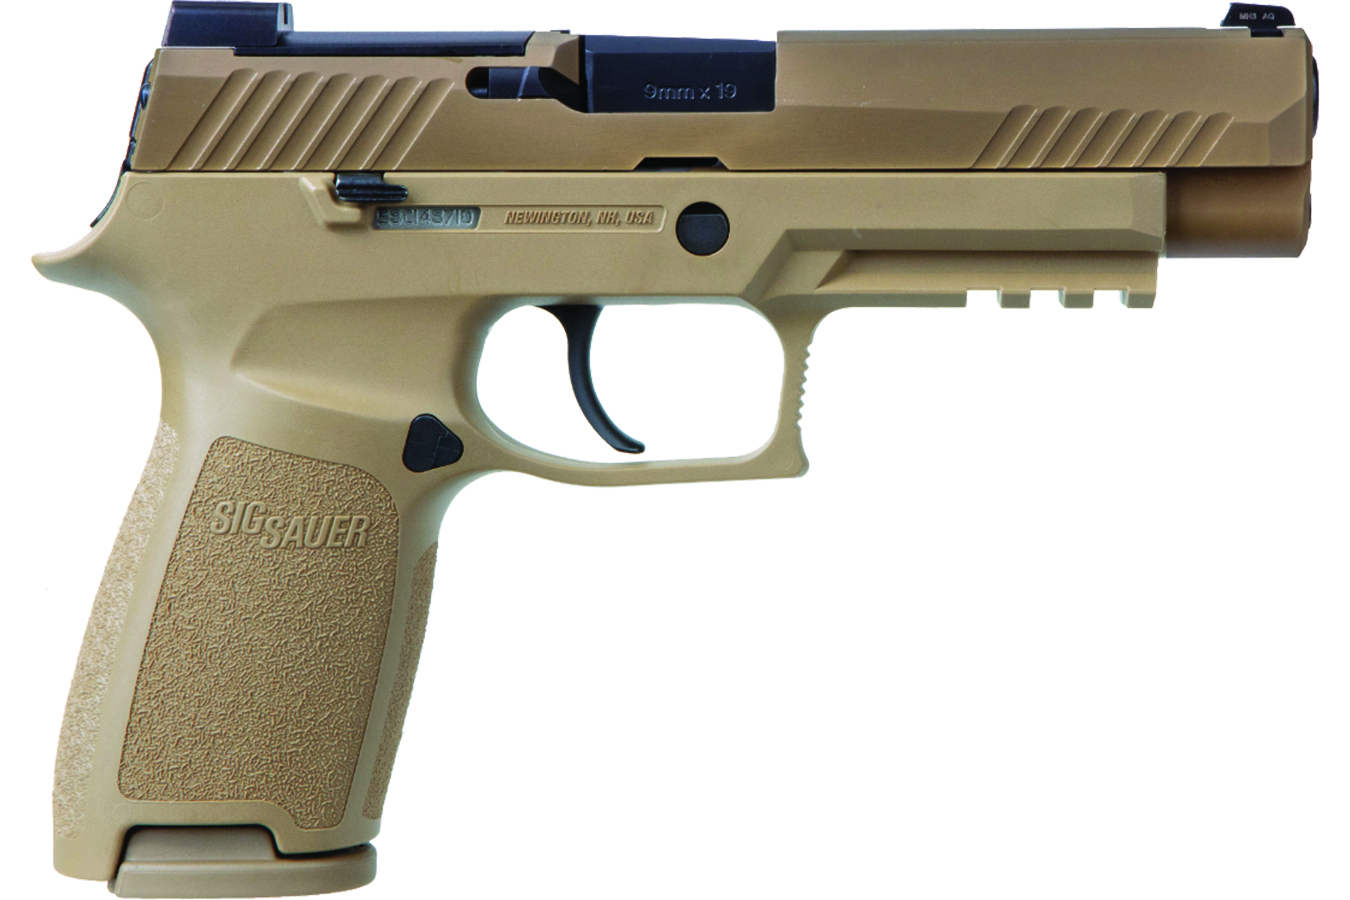 SIG P320 M17 9mm Full-Size FDE No Manual Safety with ROMEO5 Red Dot